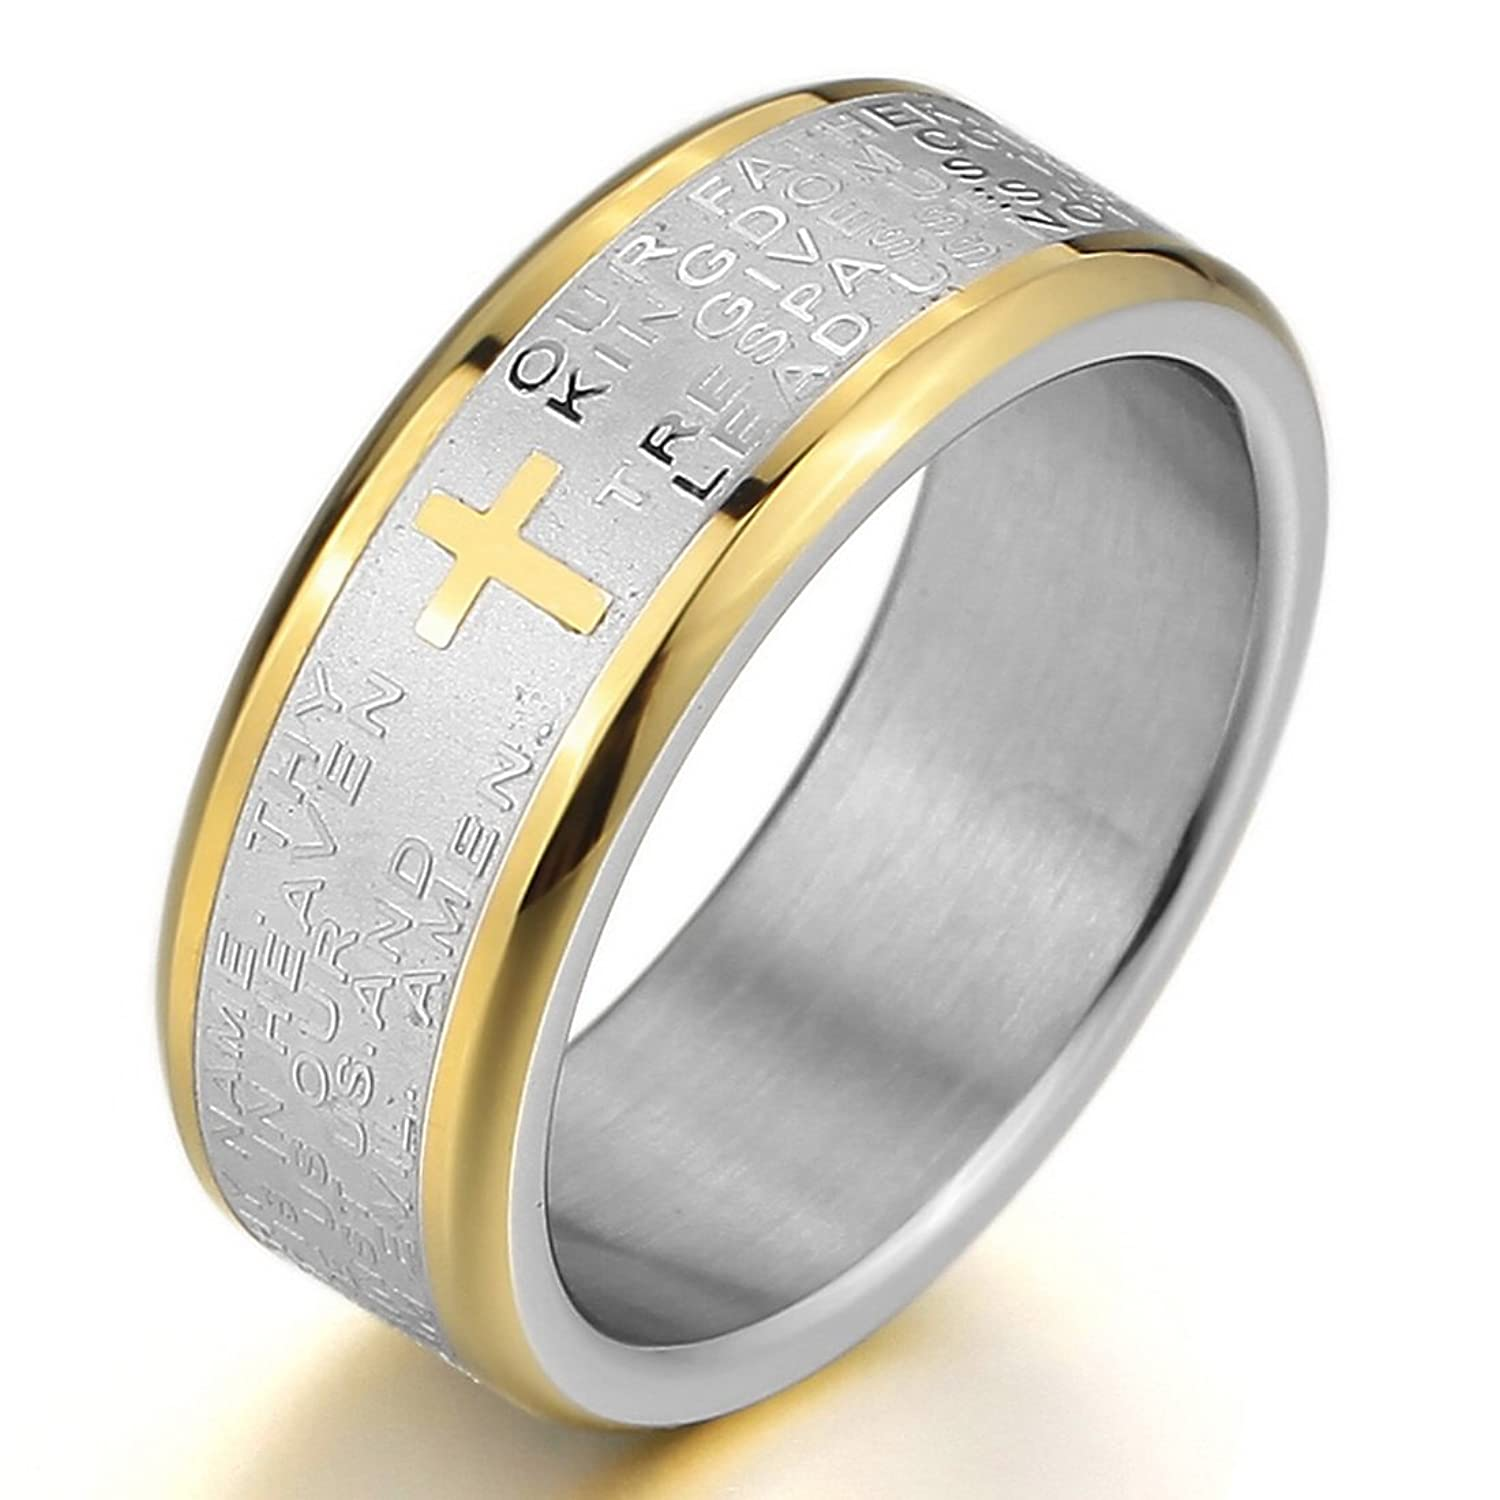 amazoncom inblue mens stainless steel ring band silver gold tone bible lords prayer cross wedding jewelry - Cross Wedding Rings